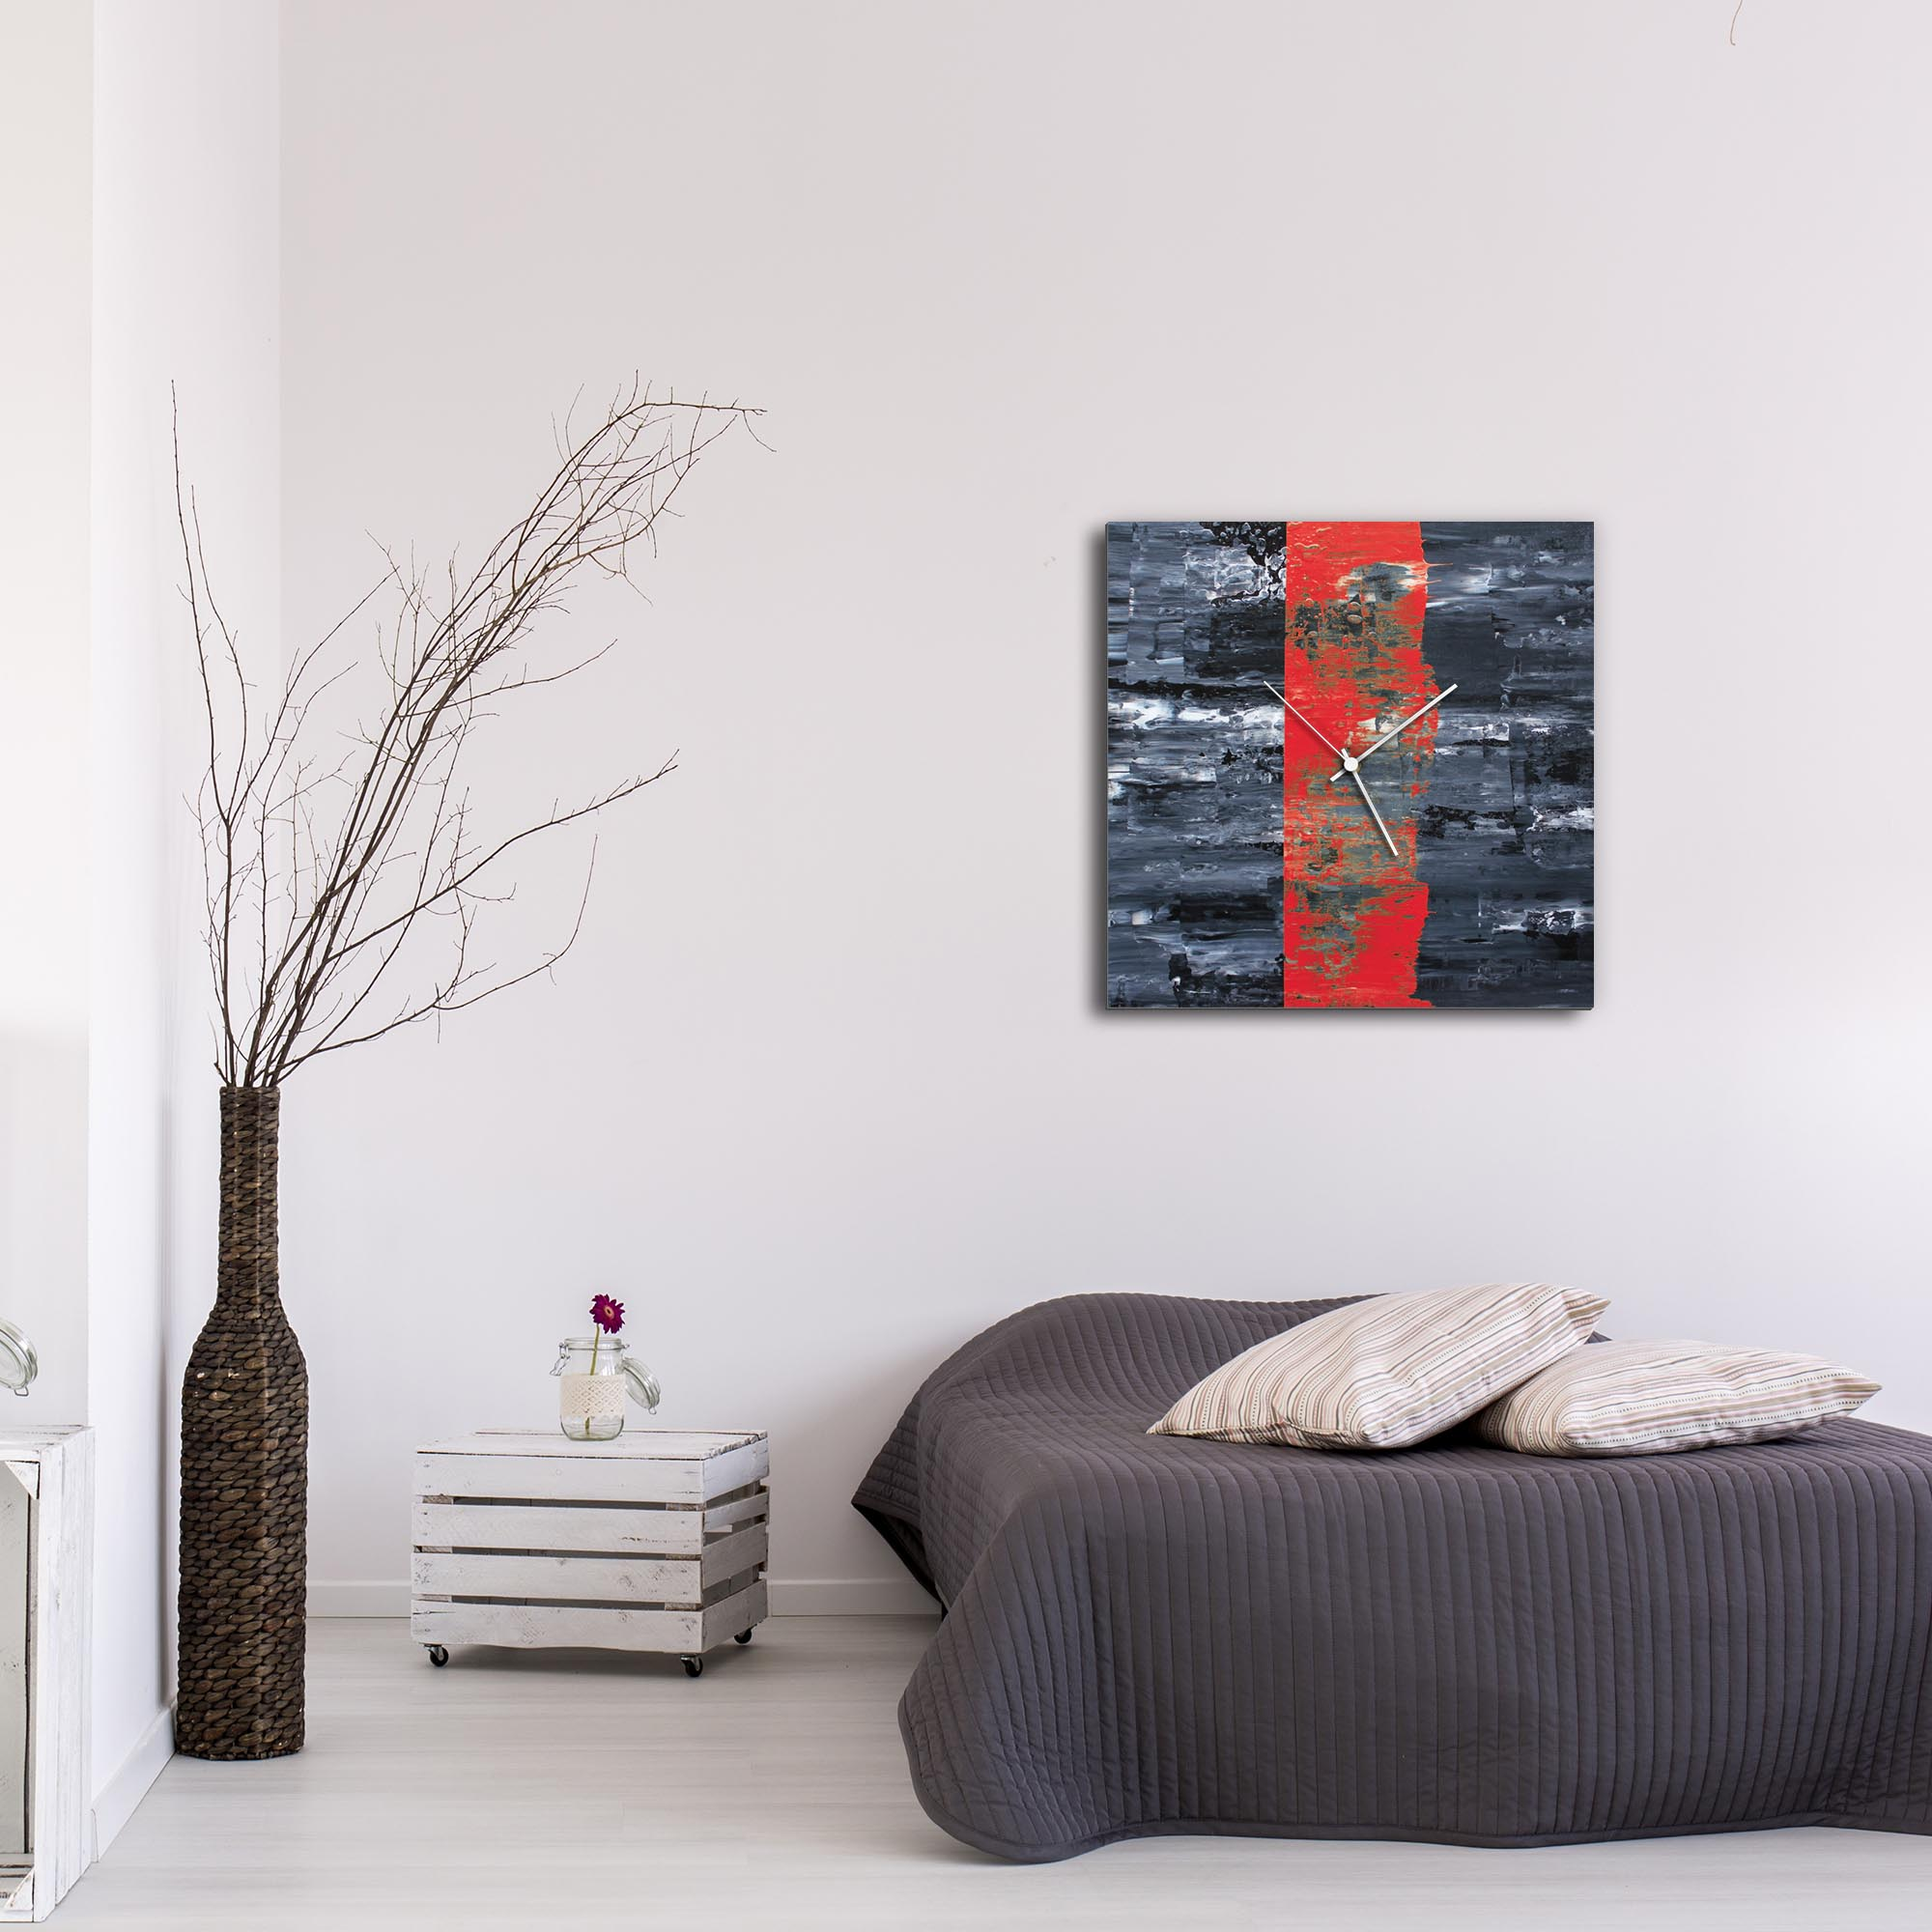 Red Line Square Clock Large by Mendo Vasilevski - Urban Abstract Home Decor - Lifestyle View